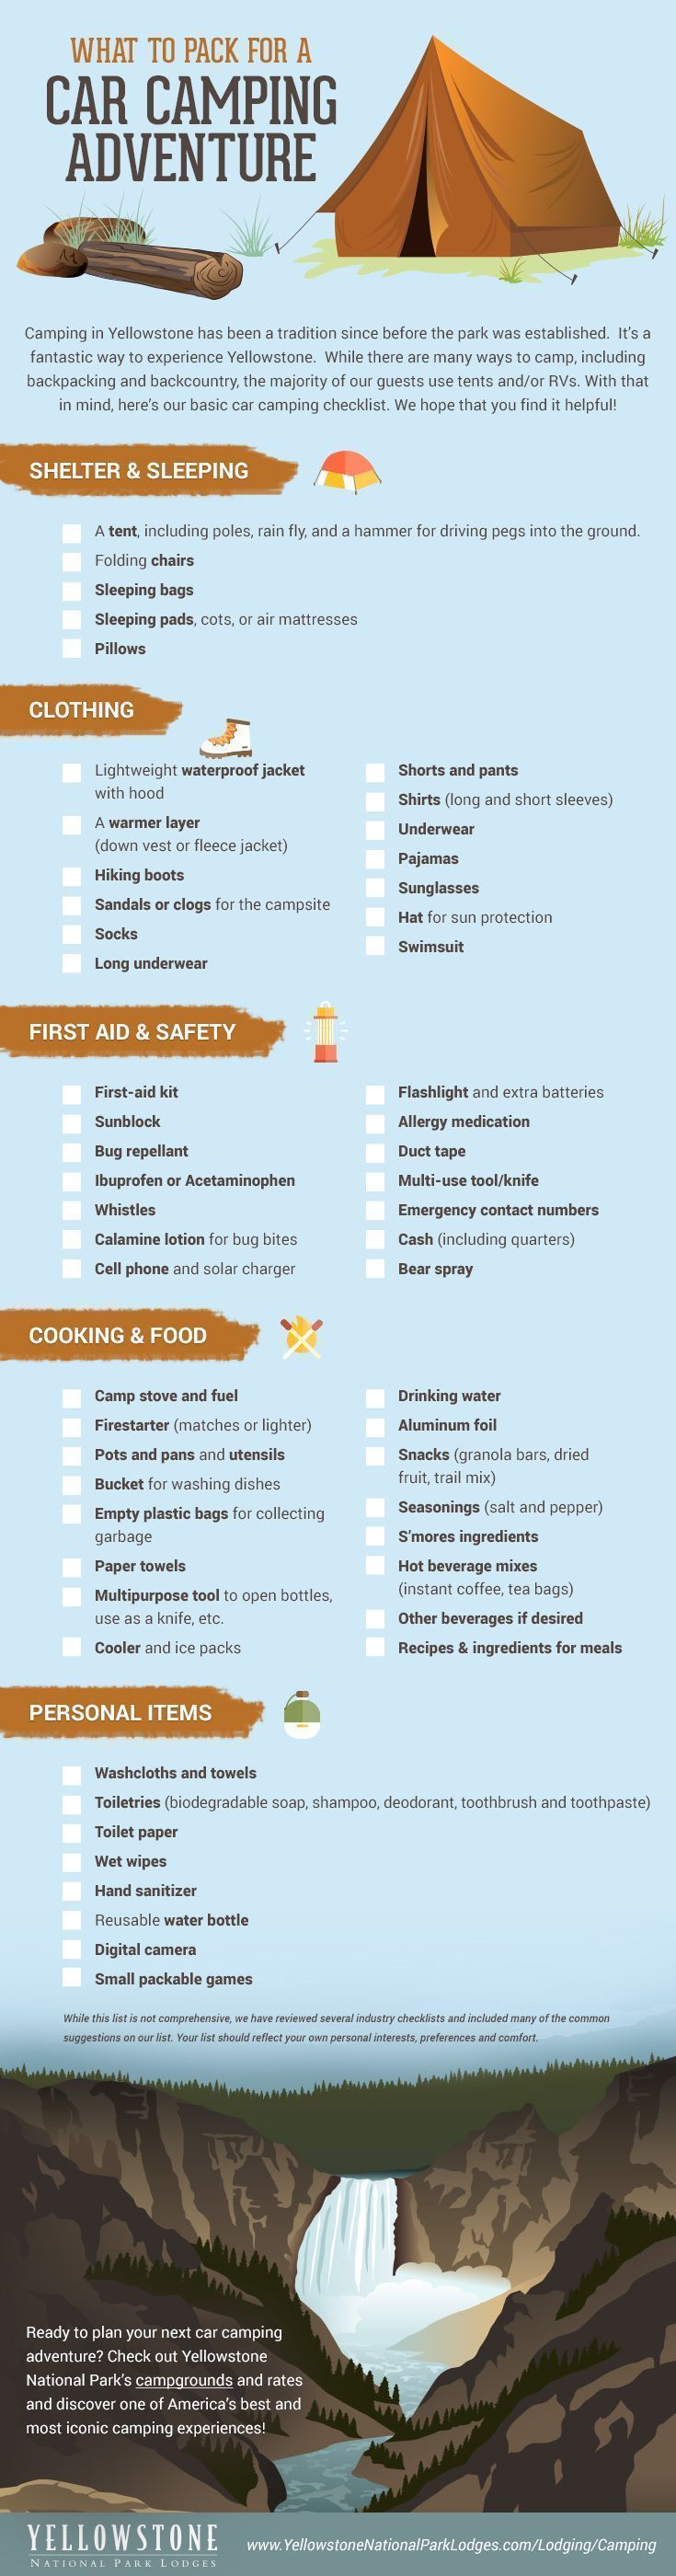 best camping images on pinterest campers tents and campsite